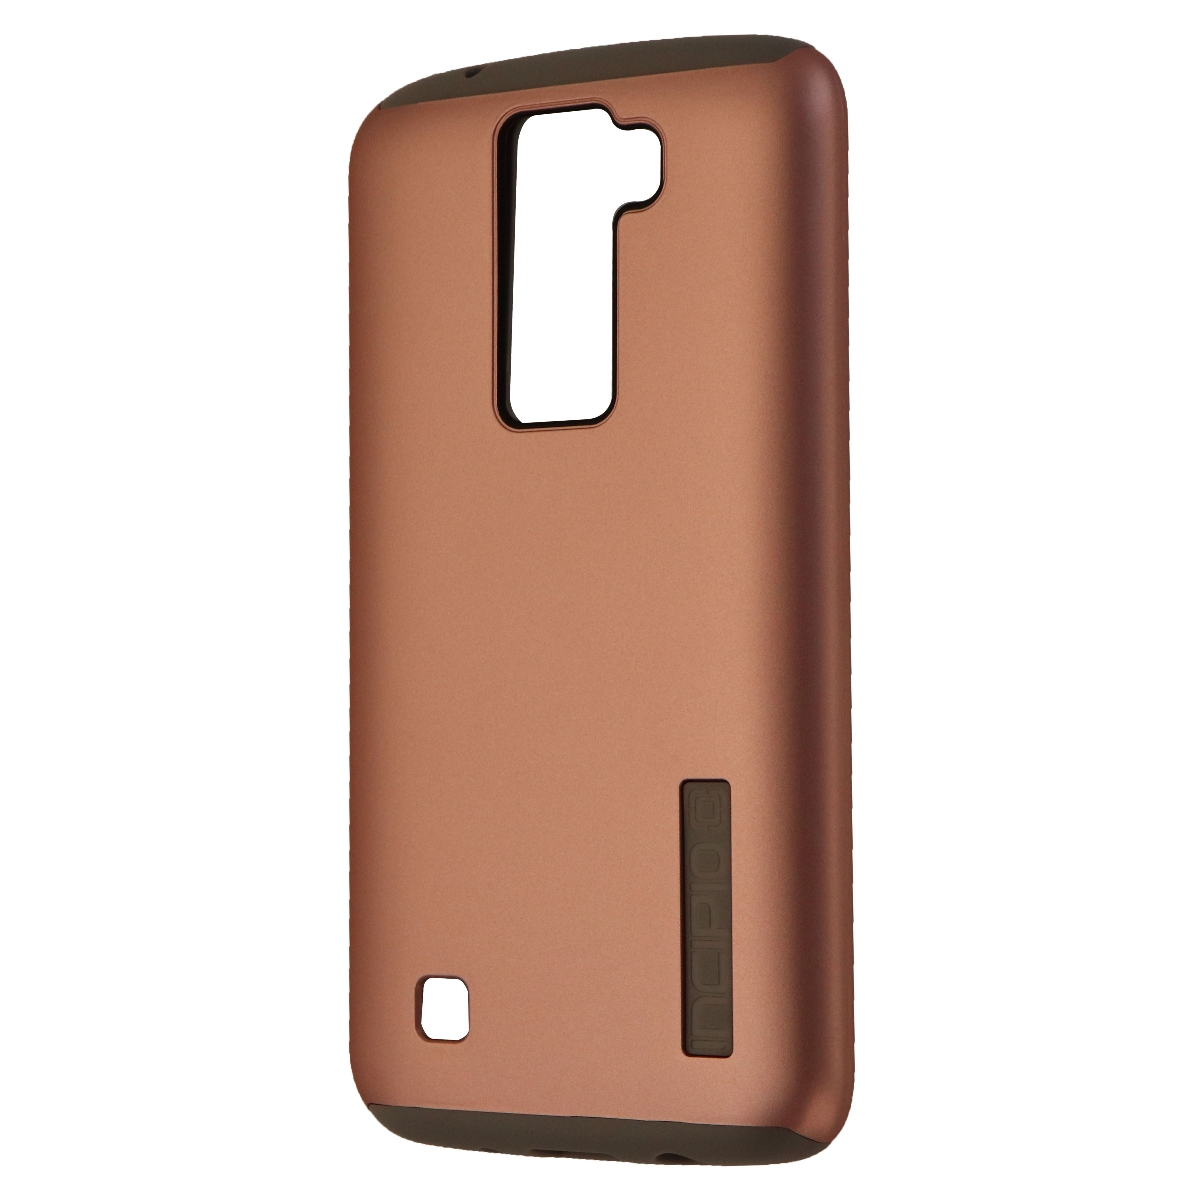 Incipio DualPro Series Dual Layer Case Cover for LG K7 - Pink Rose Gold/Gray